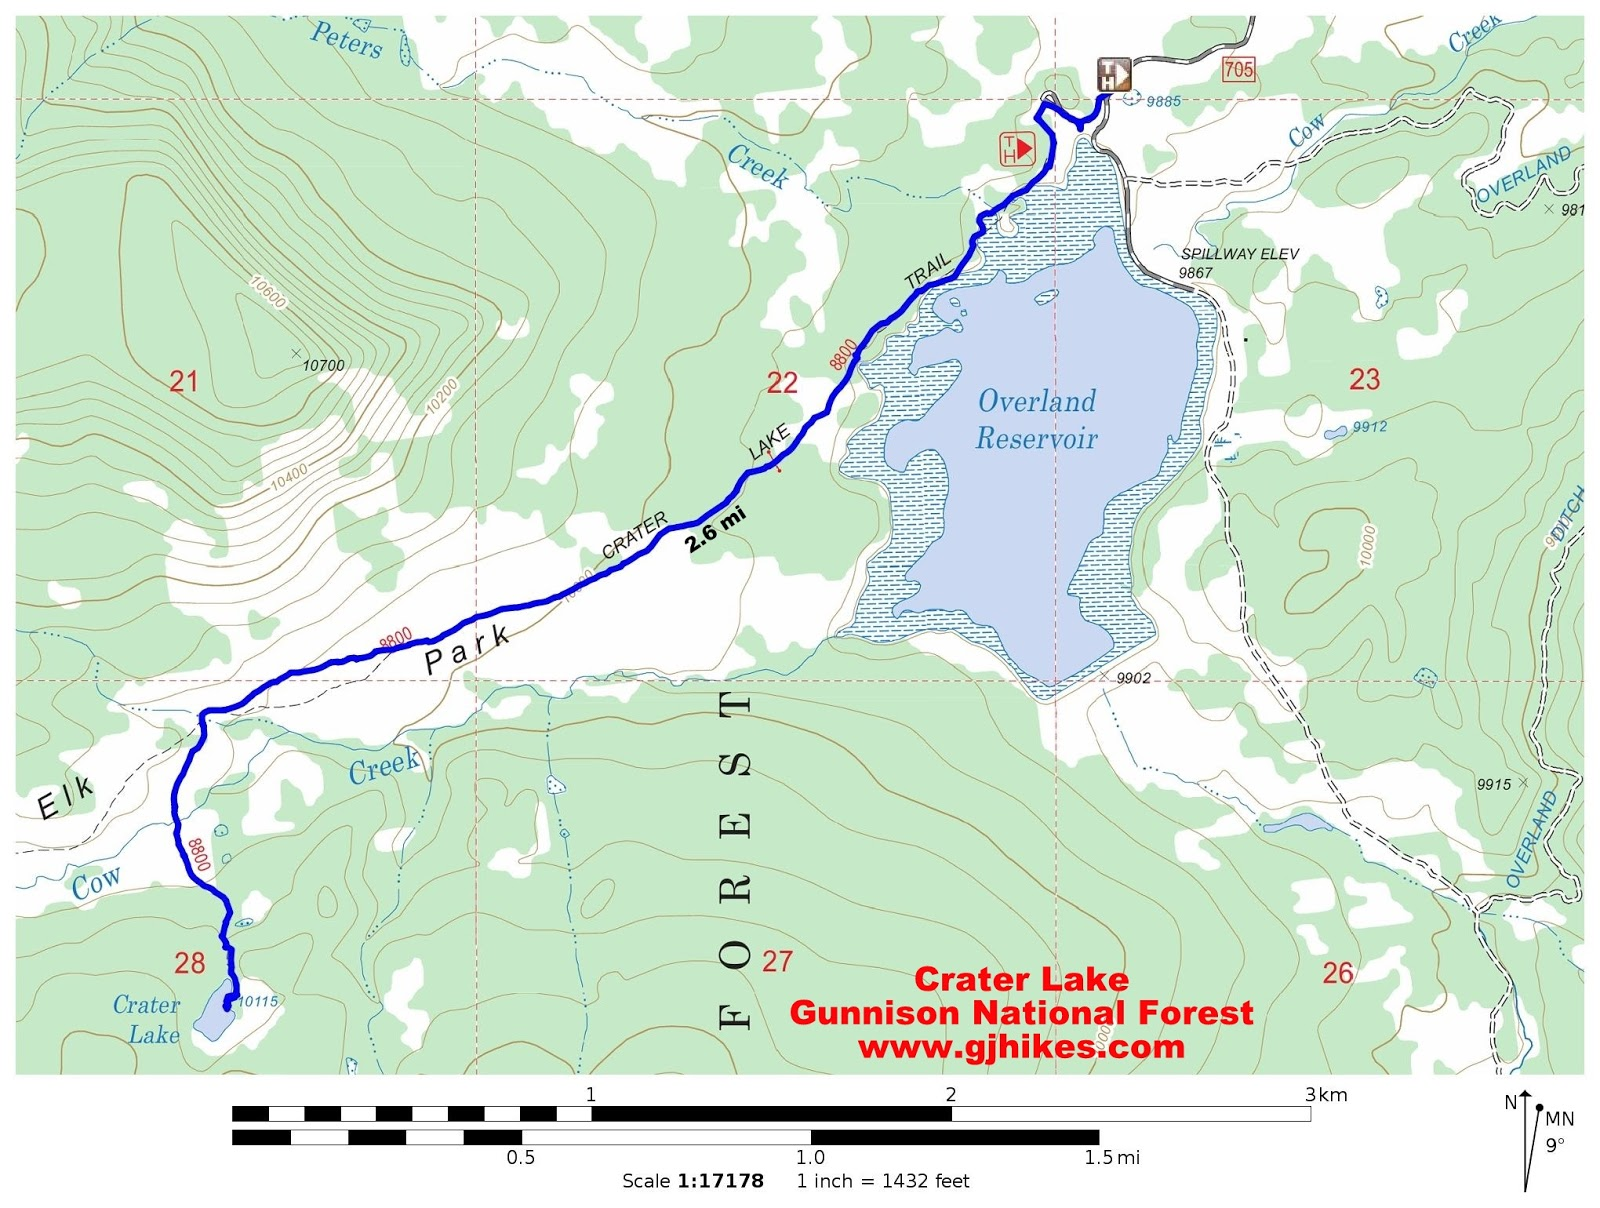 gjhikescom Crater Lake